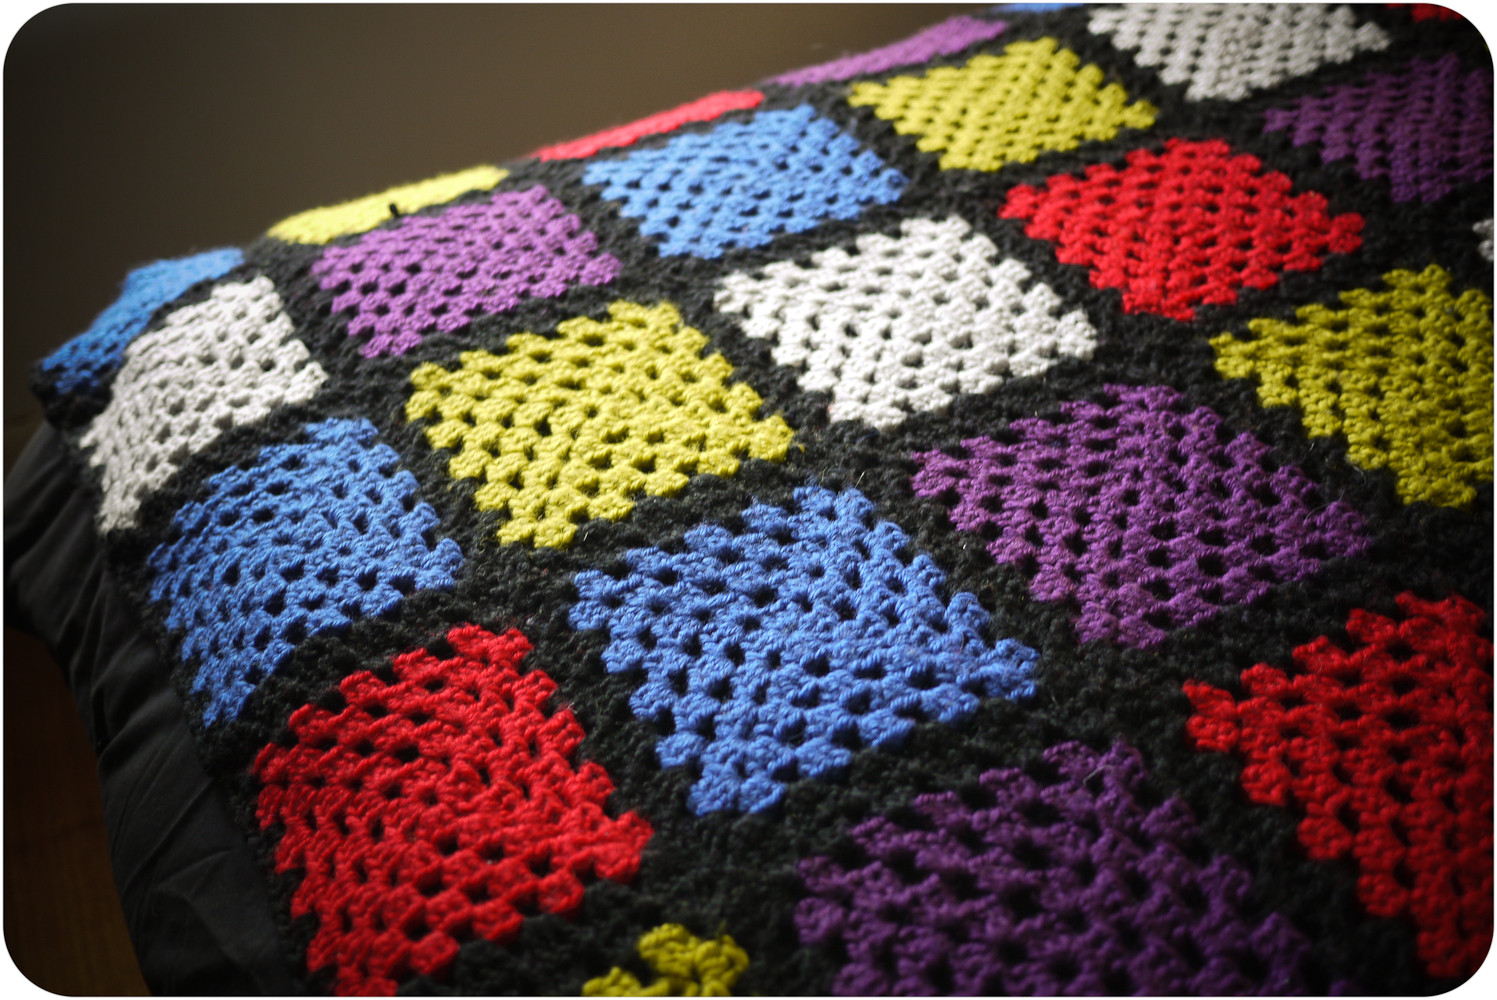 """Crochet Quilts New Veronica Darling Voila """"the Breaking Wire"""" Crochet Blanket Of Unique 45 Pics Crochet Quilts"""